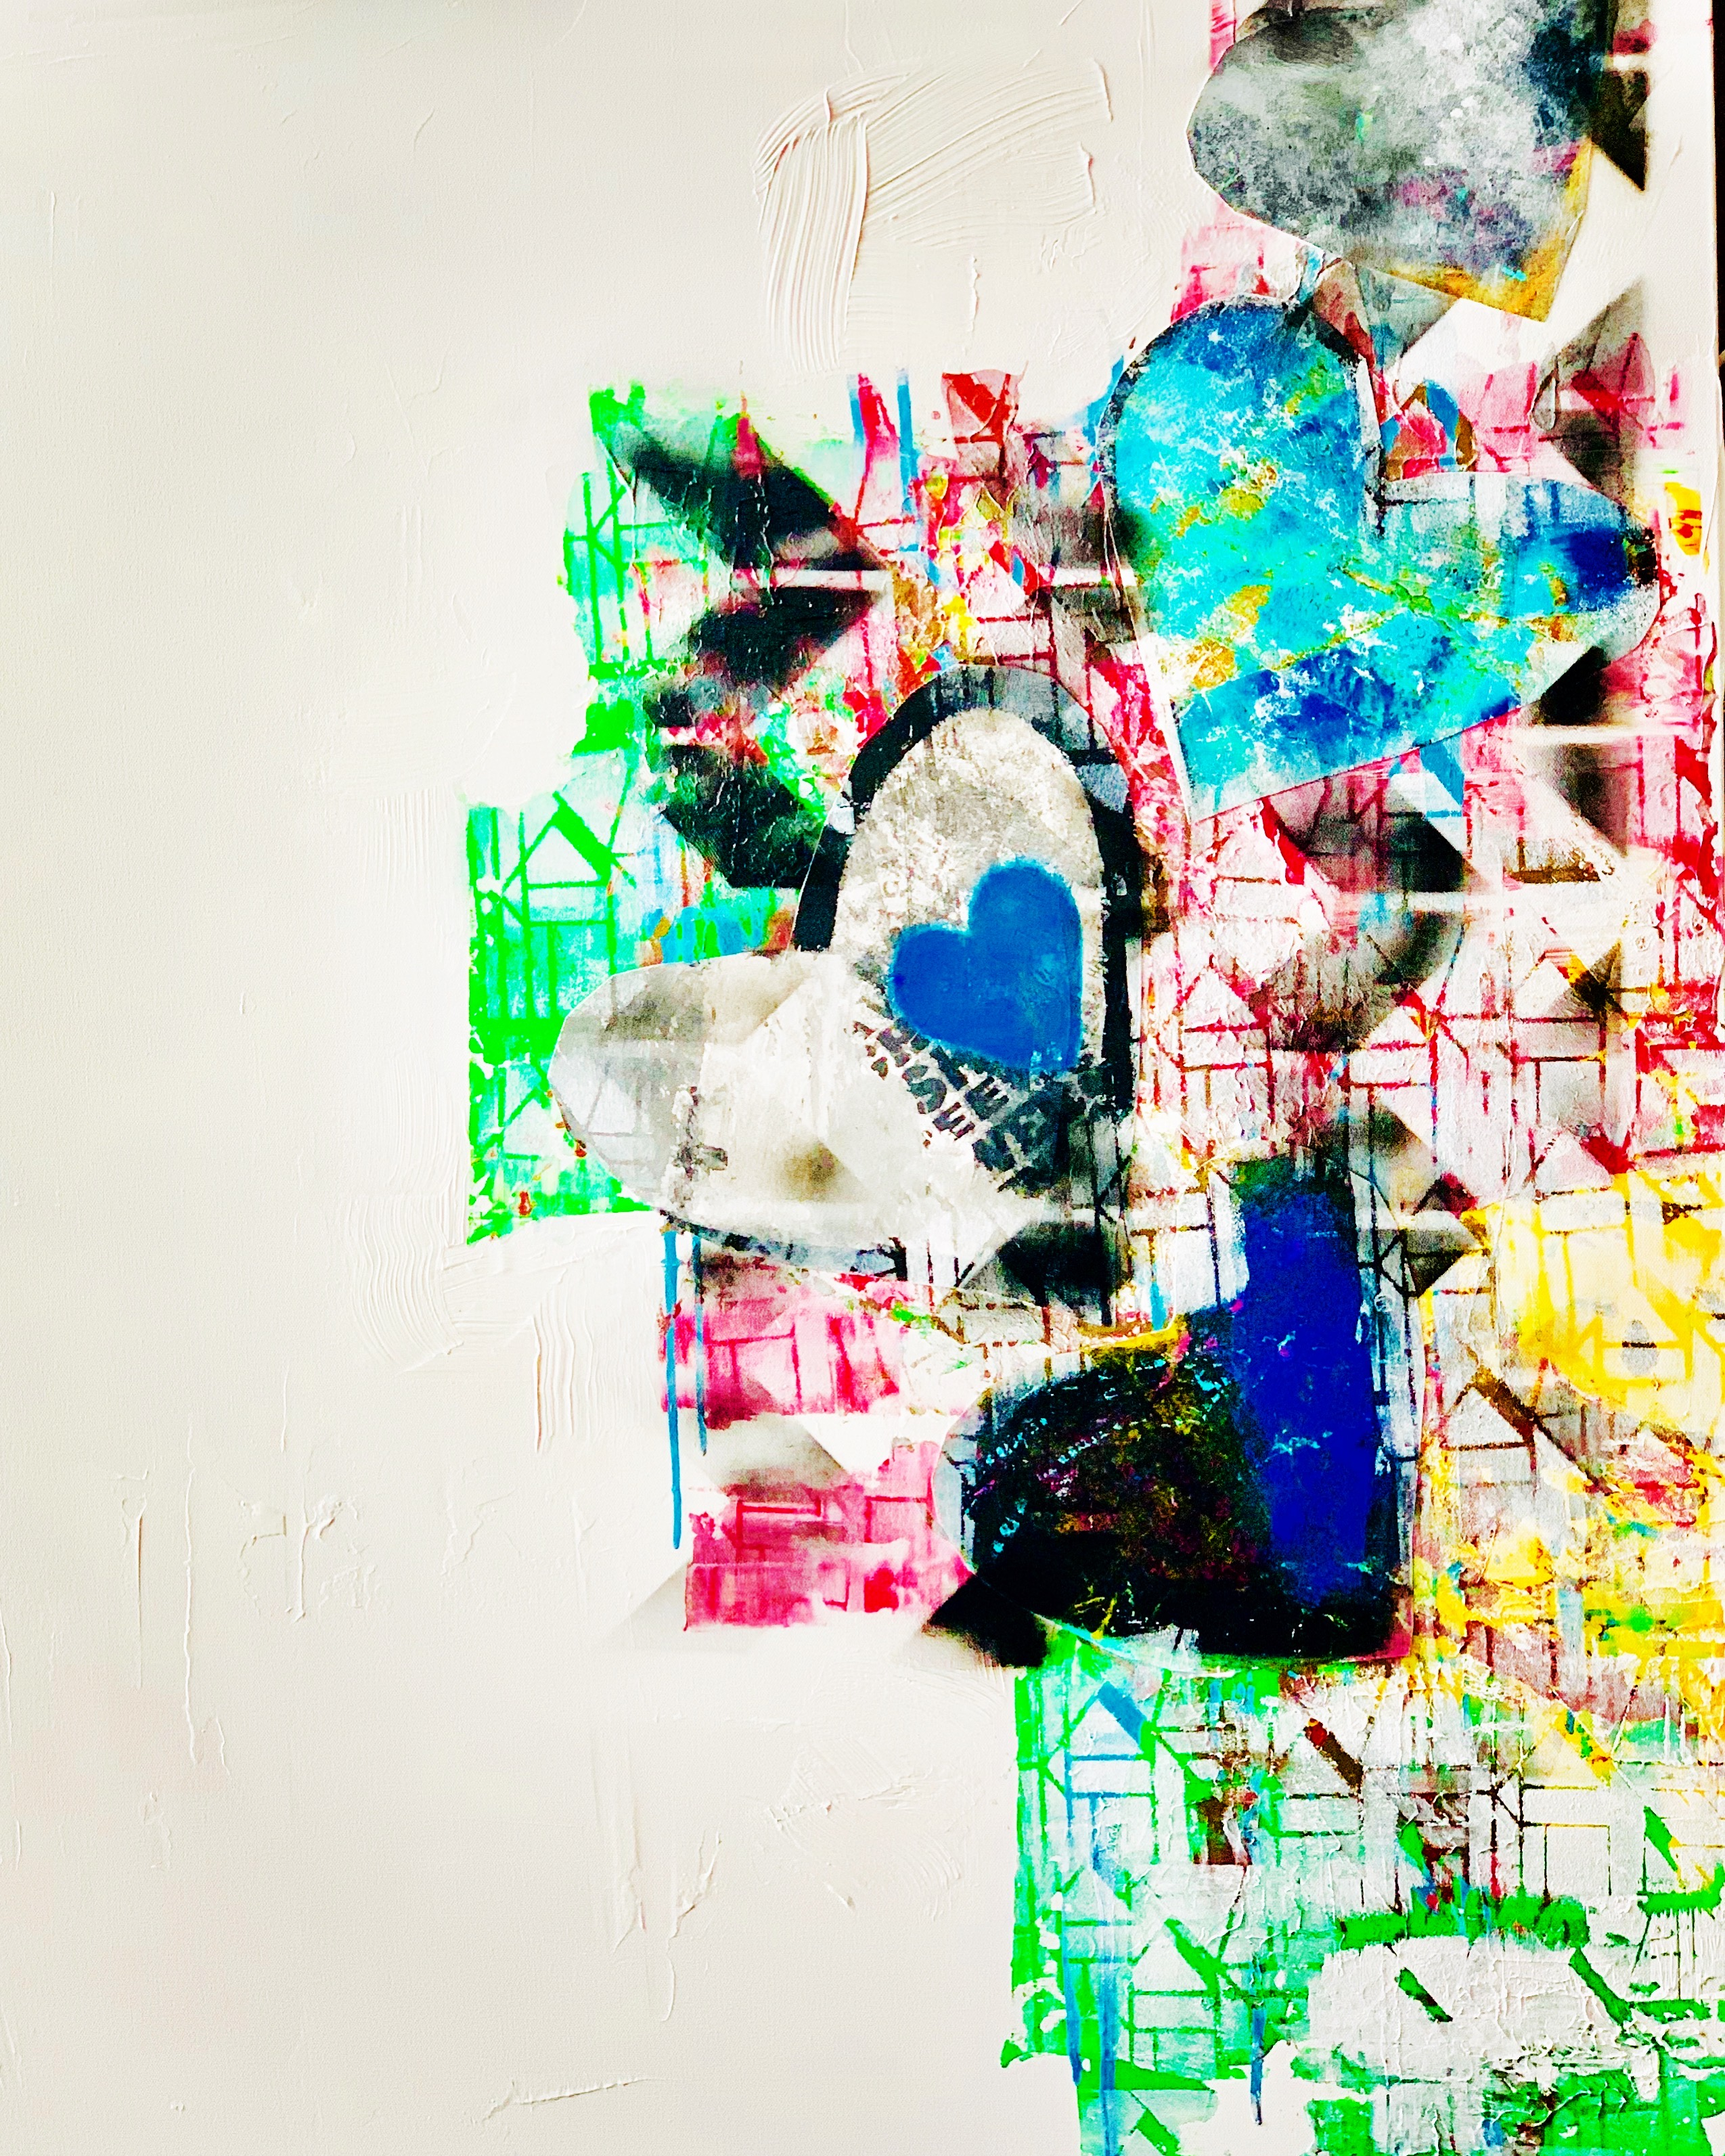 untitled artwork by Stephanie dillon - art listed for sale on Artplode